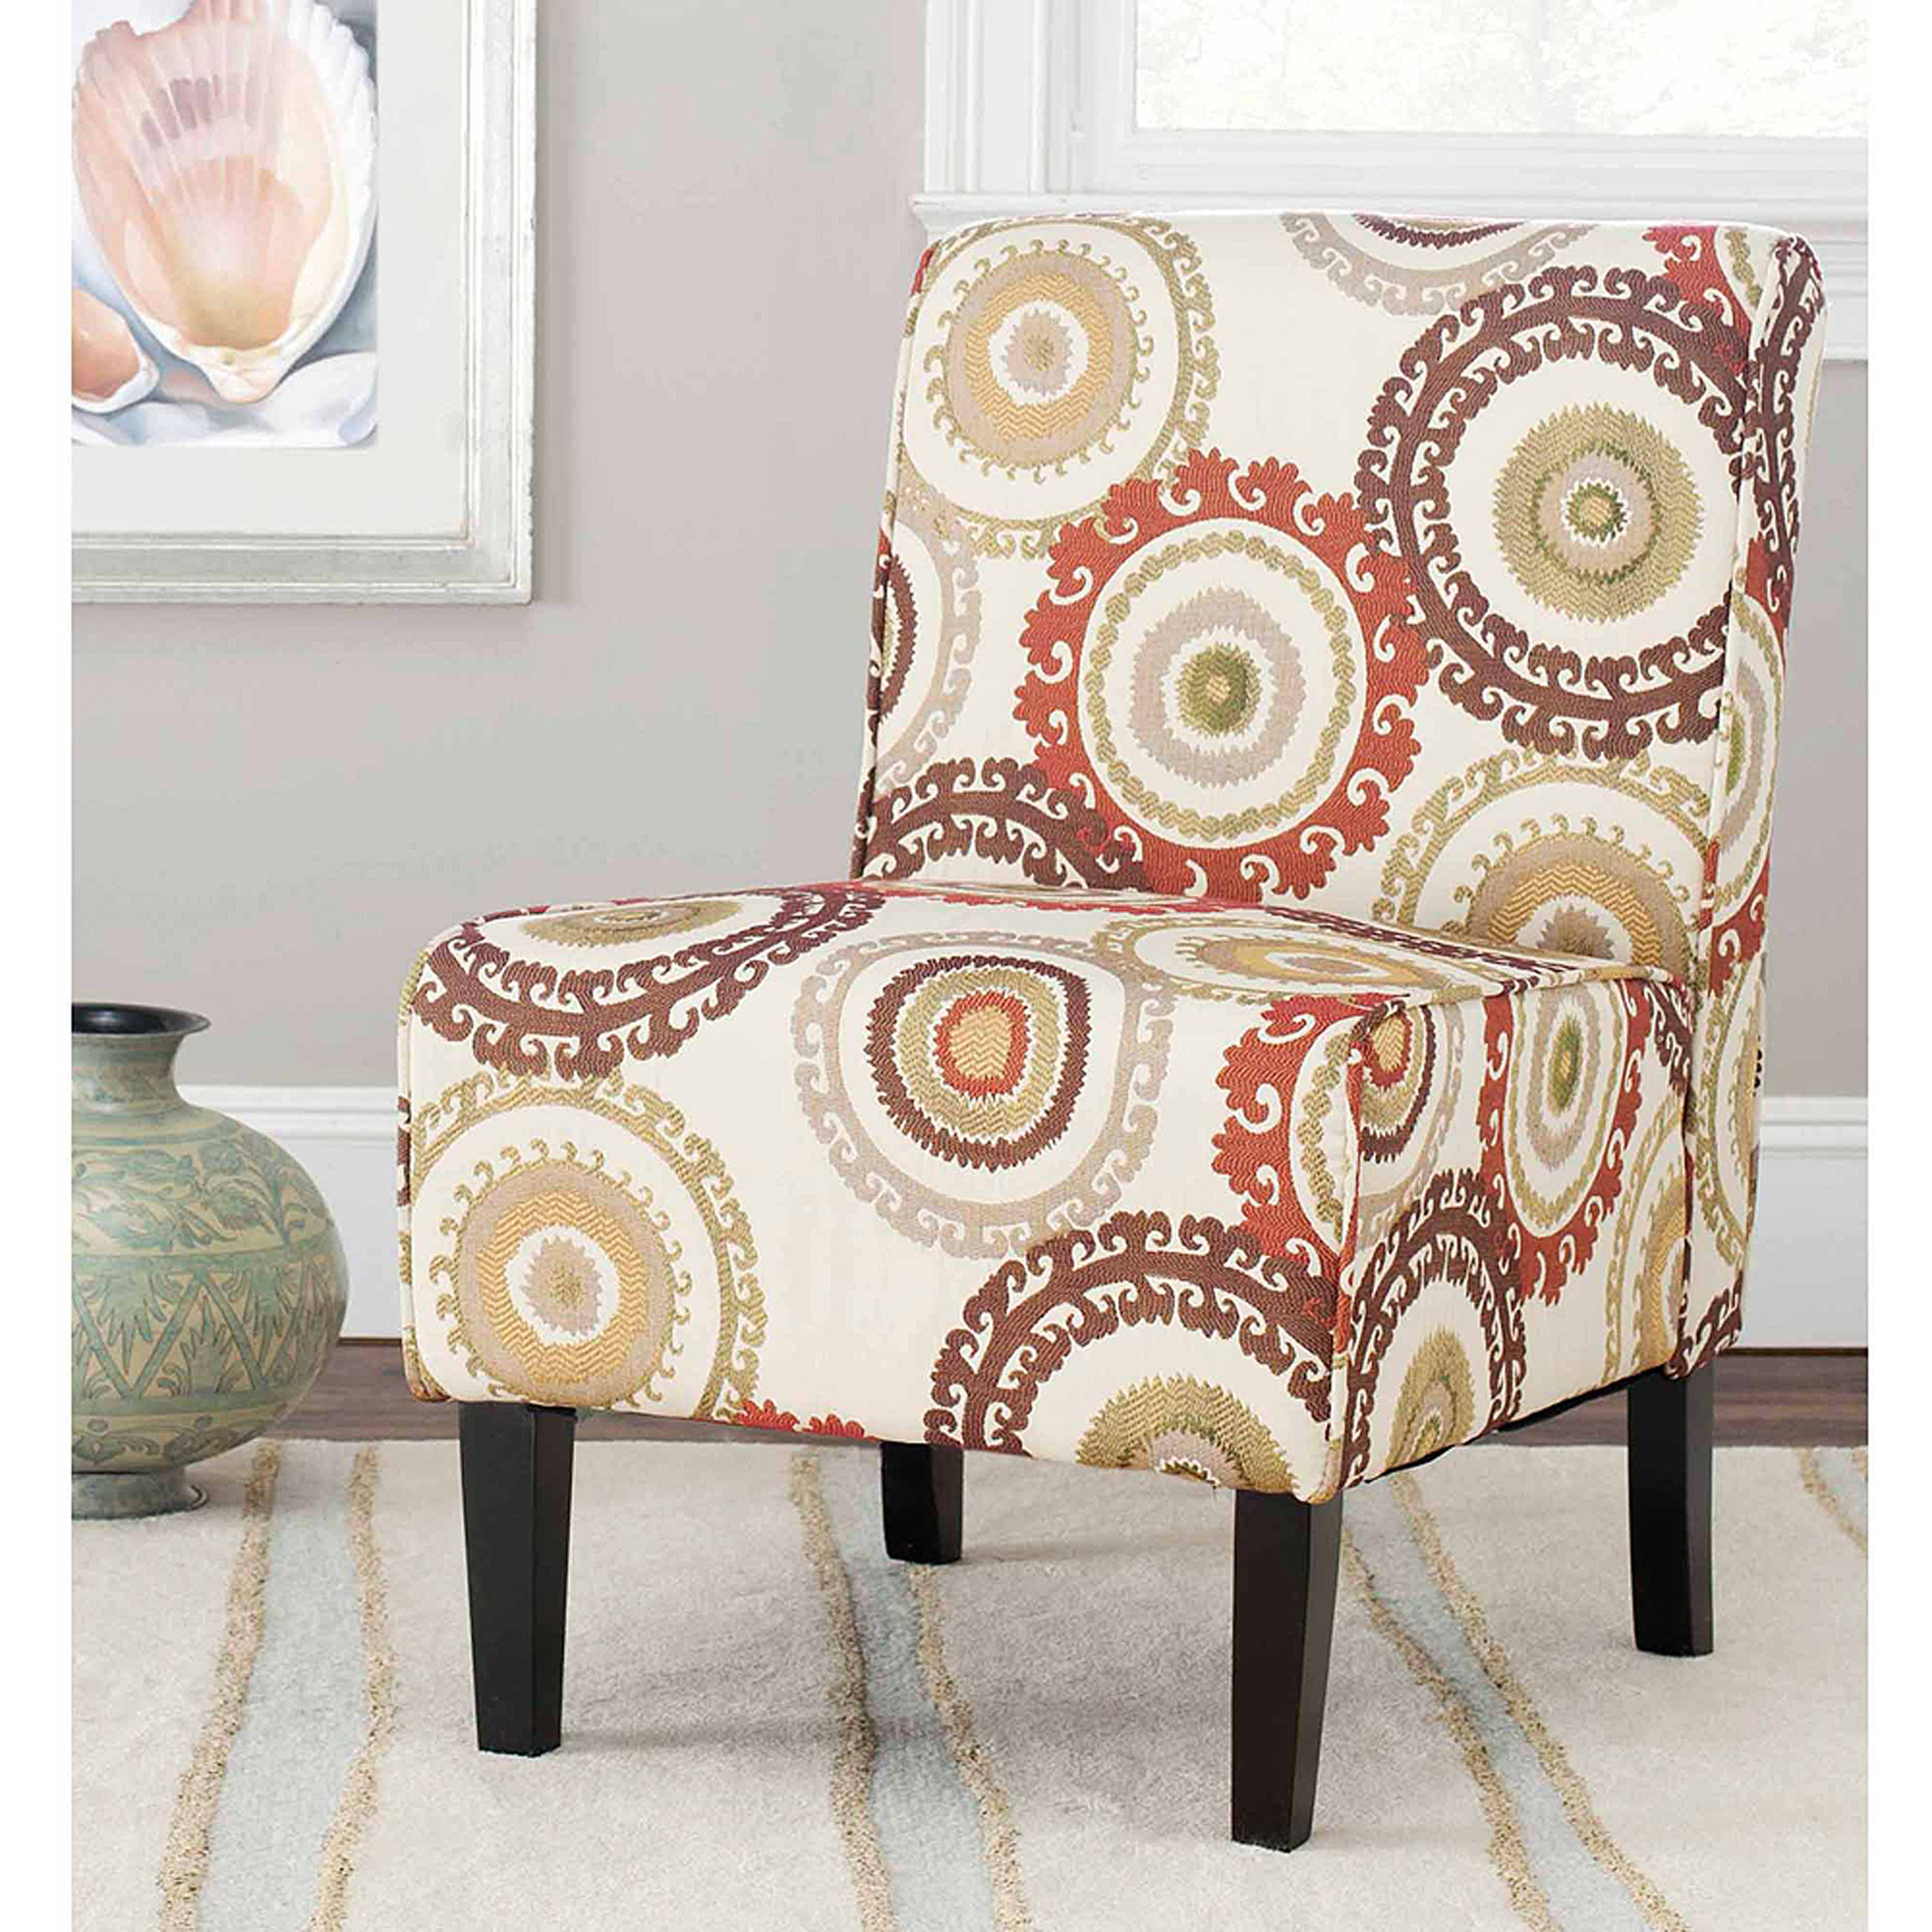 Safavieh Marka Armless Club Chair, Multi-Beige, Brown, Orange and Green